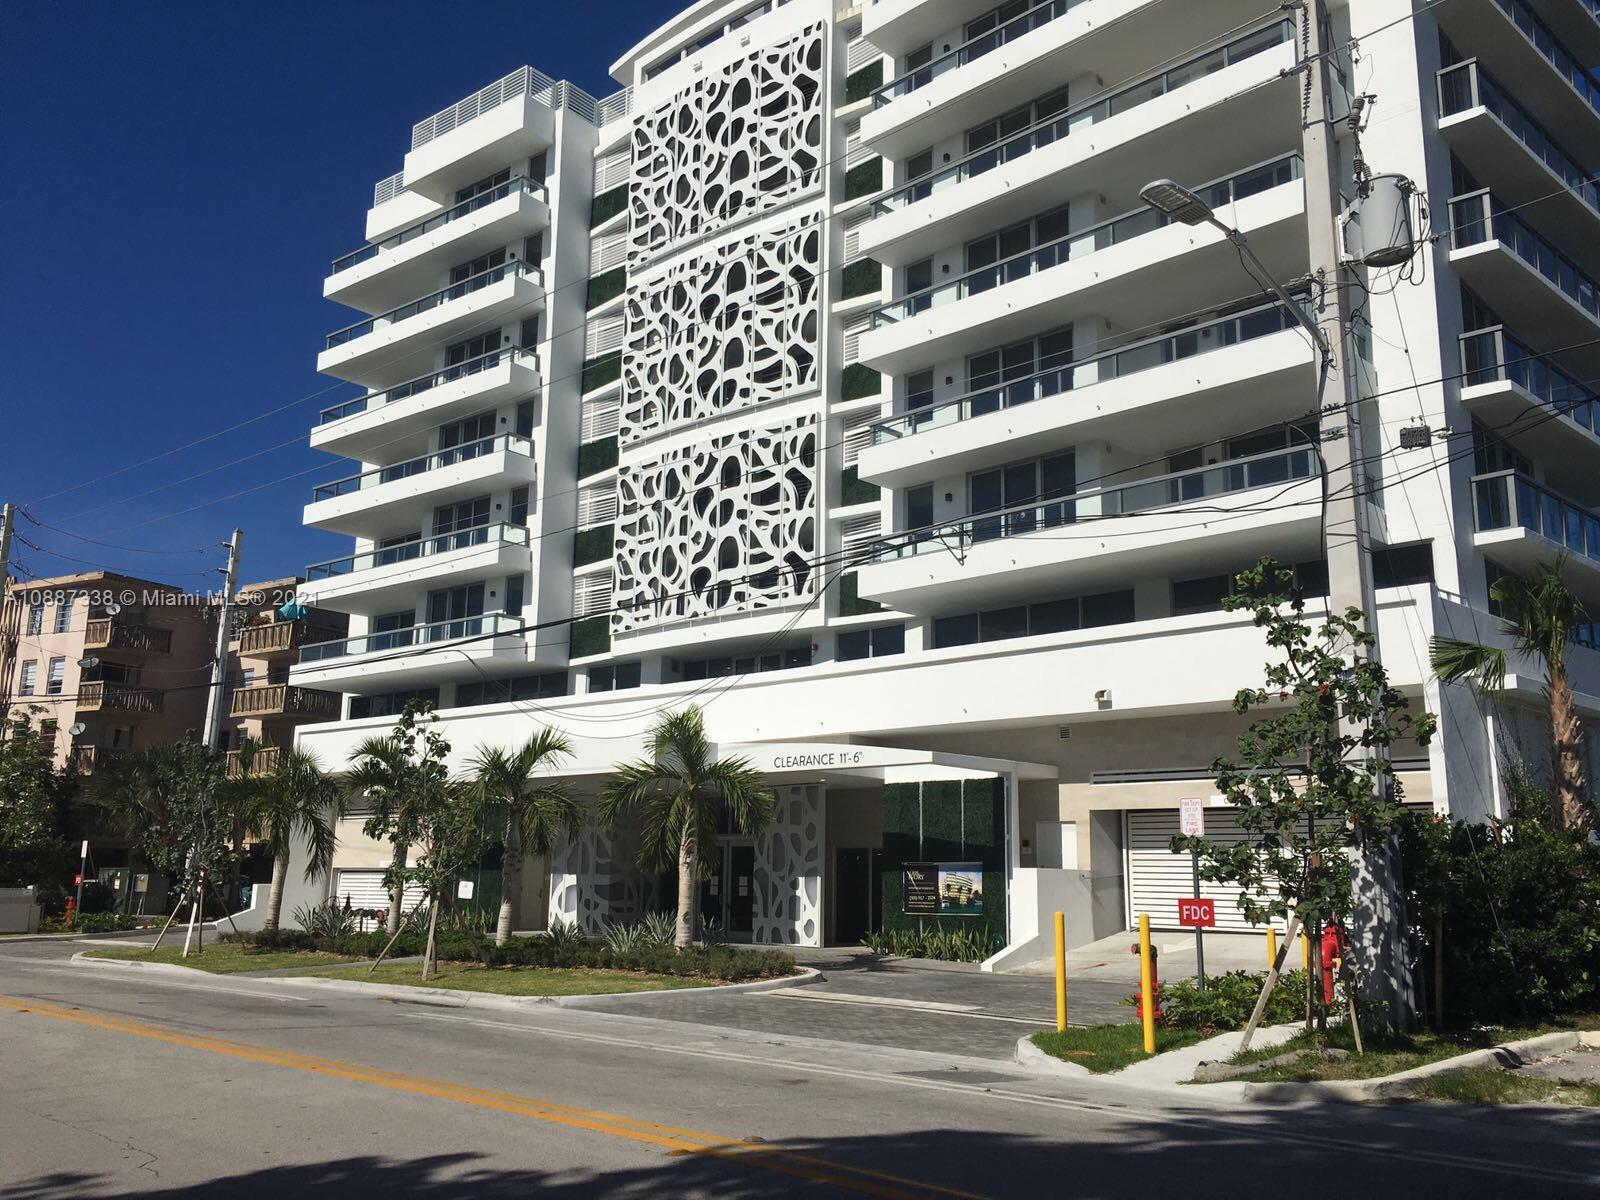 This stunning and unique 2 bedrooms 2 bathroom is the perfect home. This spacious residence is located at The Ivory Condominium in highly sought after Bay Harbor Island. The Ivory is a 40 unit boutique building that has resort-style amenities including a spectacular rooftop pool, full-service fitness center, and lobby concierge. The corner unit has dramatic intercoastal views from every room, Italian cabinetry, Porcelanato floors throughout, window coverings, extended Quartz countertop for dining,  premium Bosch stainless appliances, contemporary lighting, in-suite laundry, private balcony, and 1 covered parking space. Association includes internet, lobby attendant, and large 7x7 designated personal storage. Short Term Rentals are permitted. Pets are permitted up to 40 lbs.